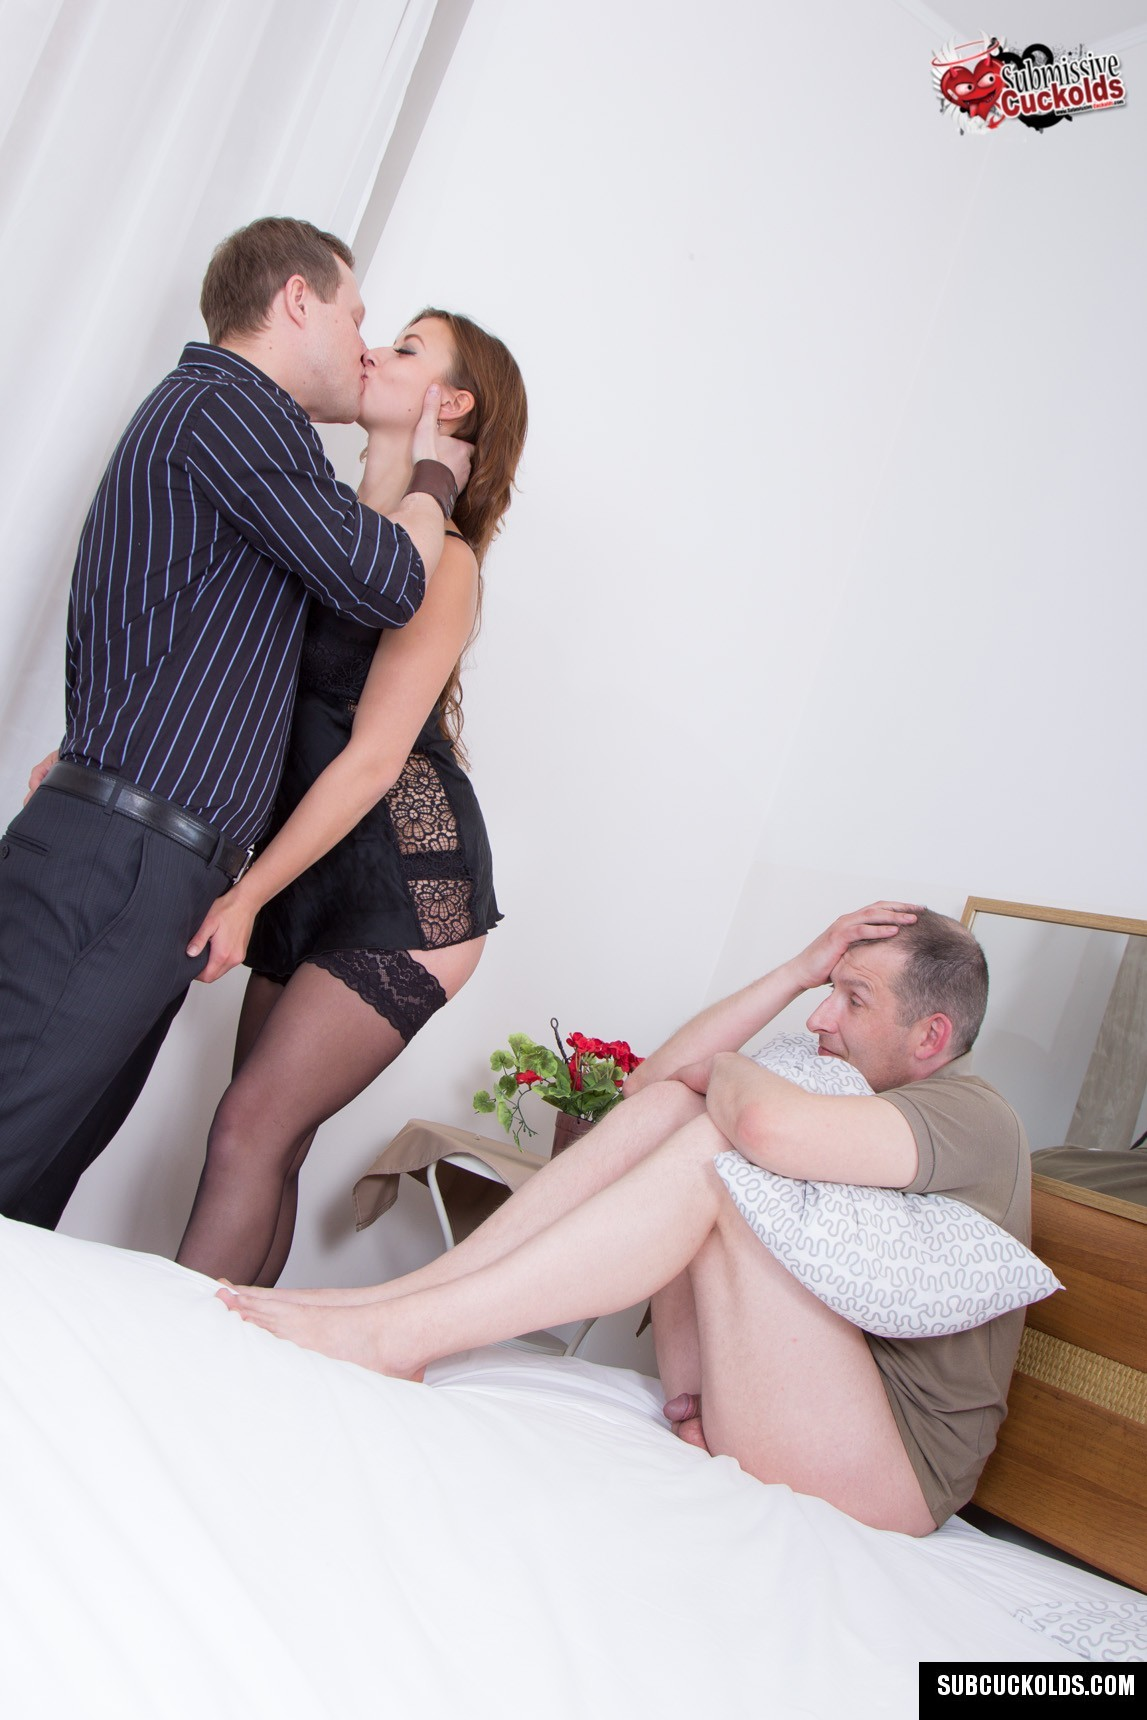 A young cuckold relationship part 2 - 3 part 3